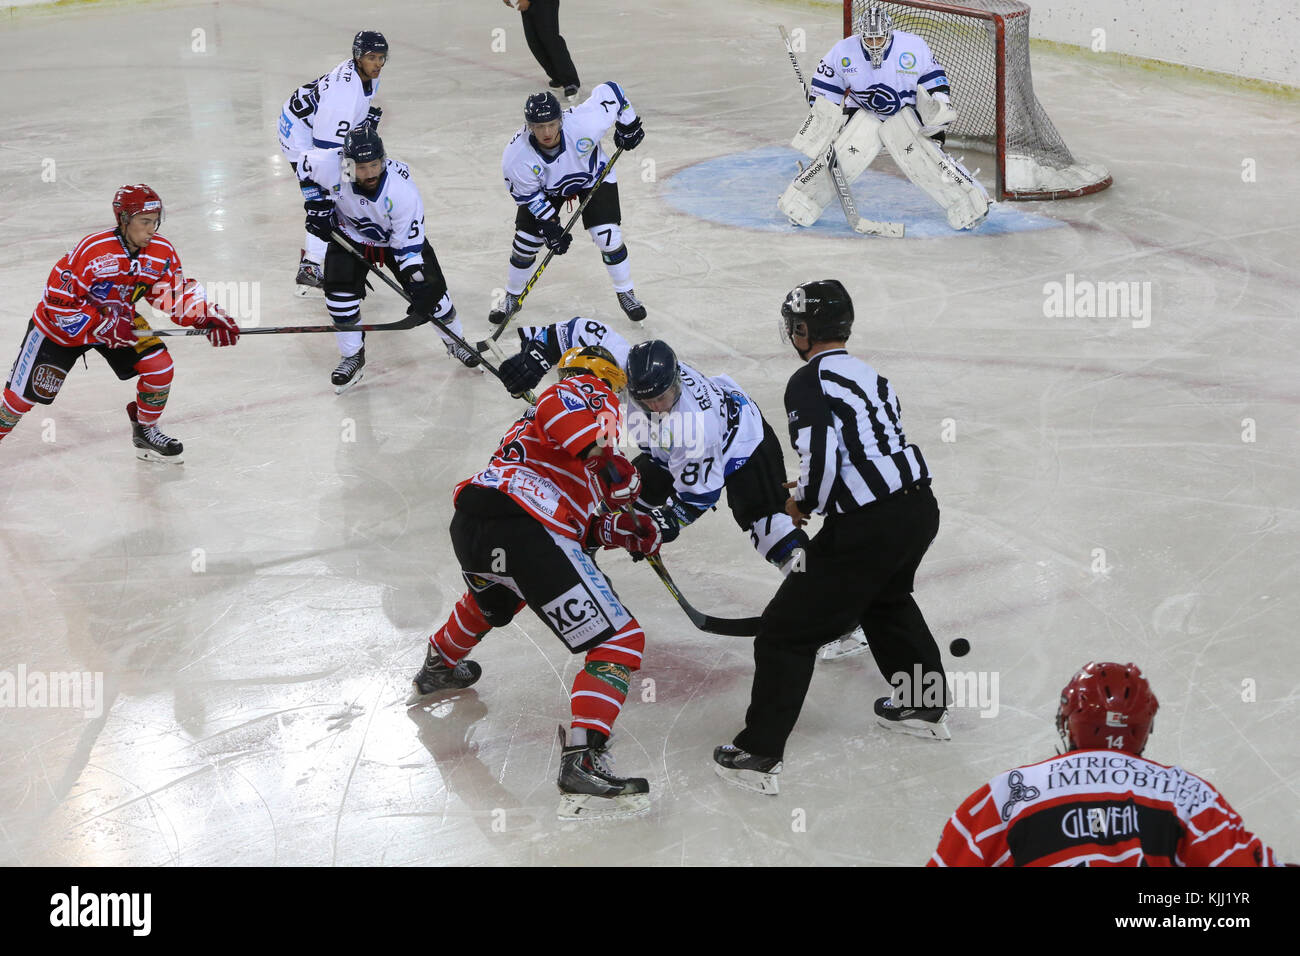 Ice hockey match. Mont-Blanc vs Nantes.  France. - Stock Image